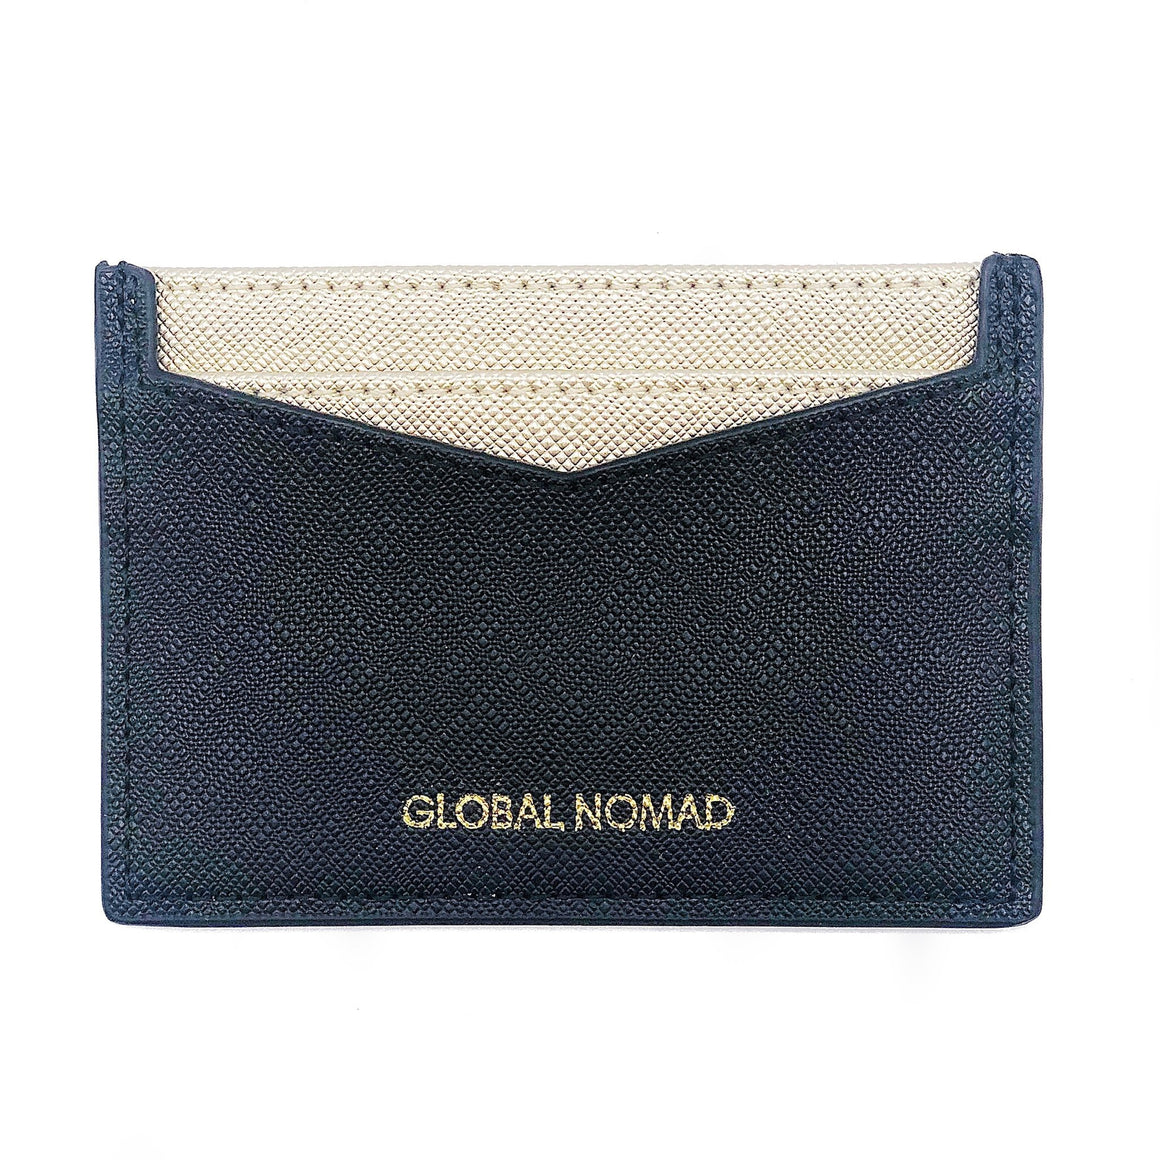 Global Nomad :: Credit Card Wallet